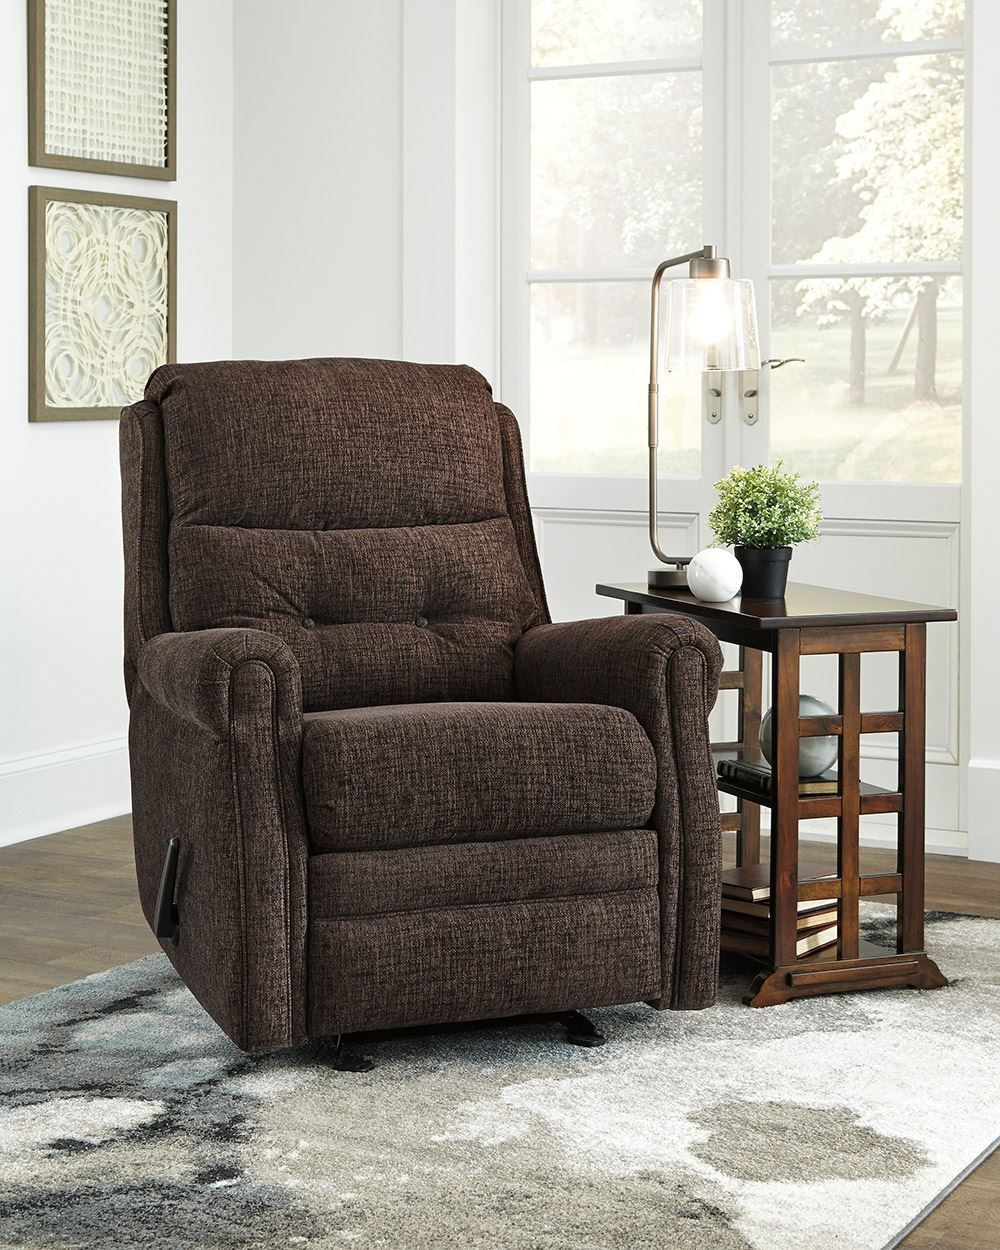 Picture of Penzberg Sable Glider Recliner